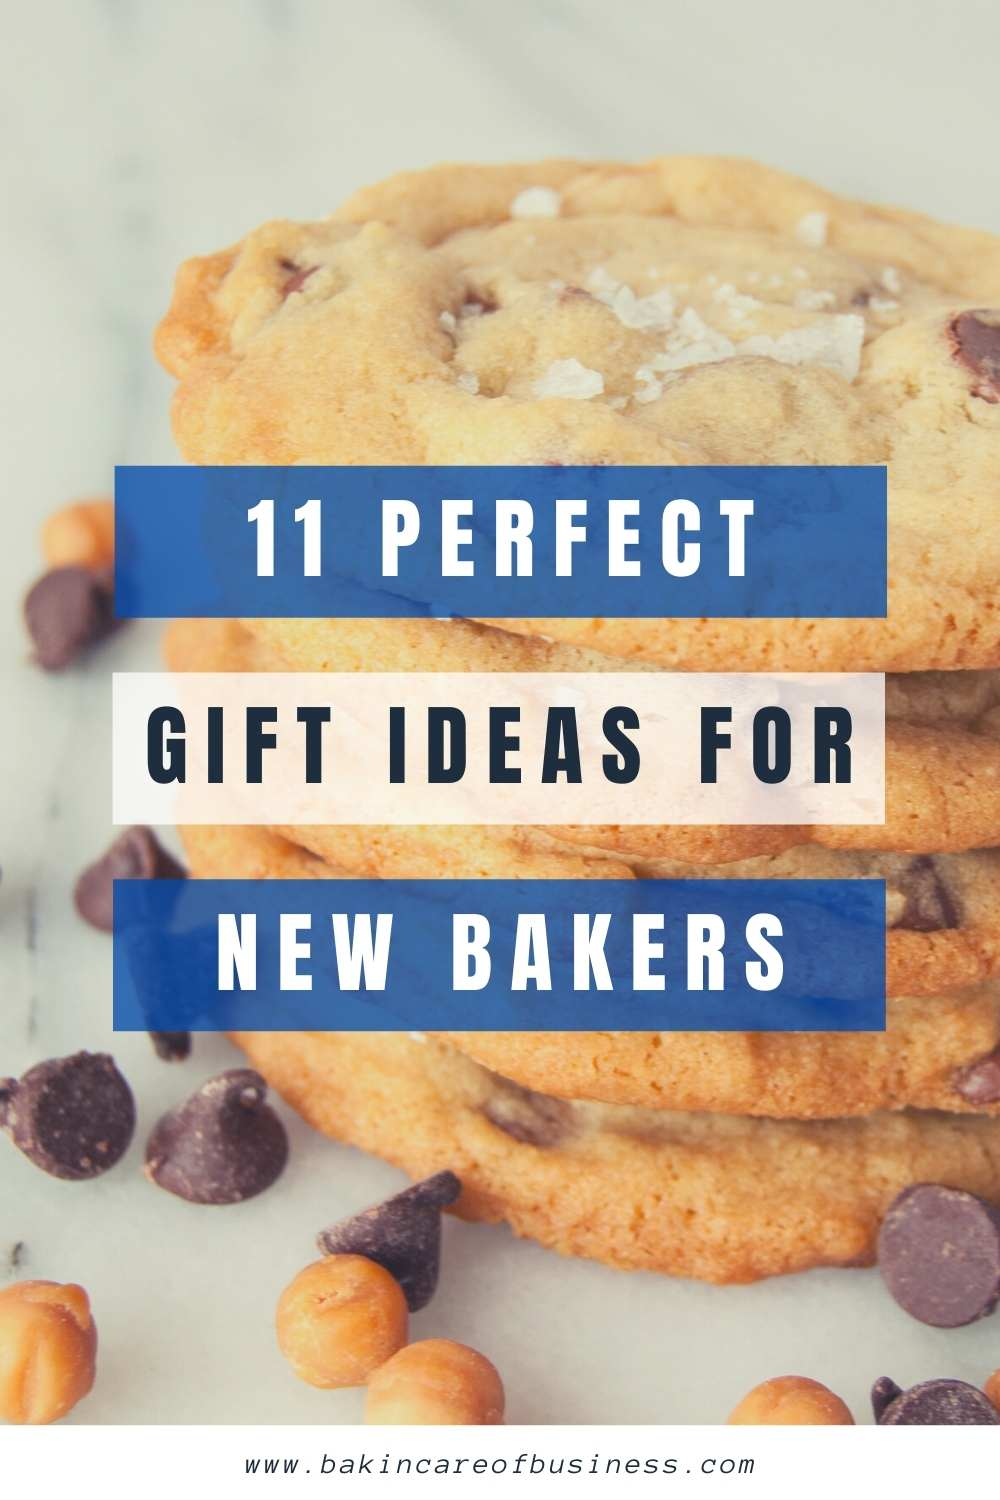 Gift Ideas for New Bakers